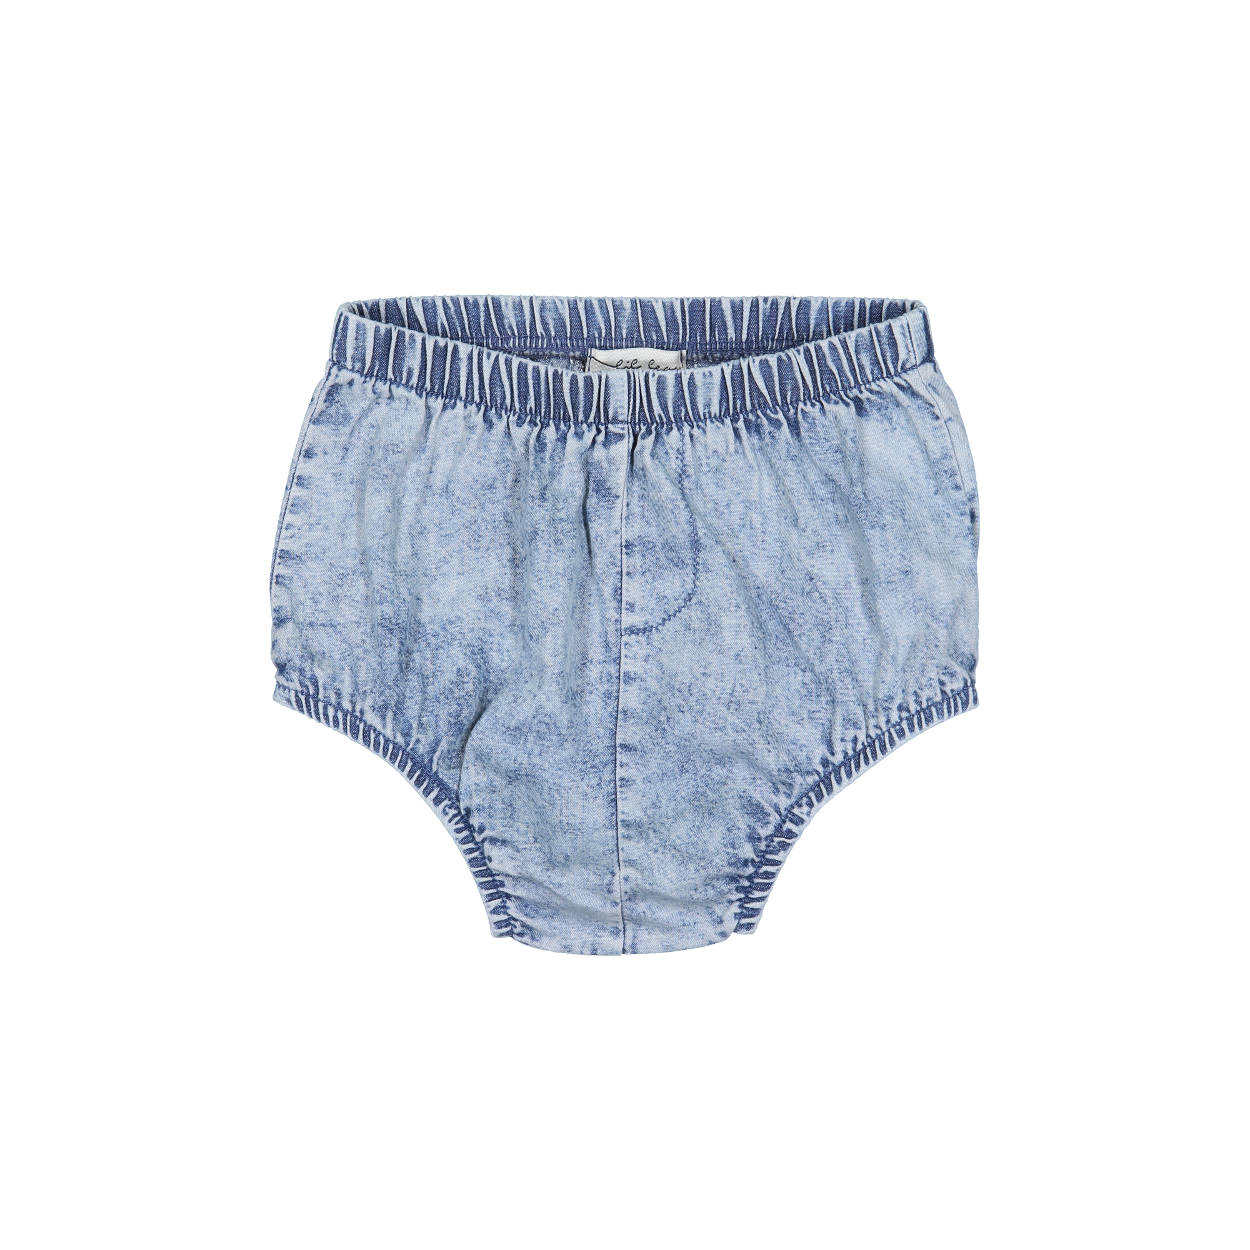 Analogie Unisex-baby Blue Wash Denim Bloomers